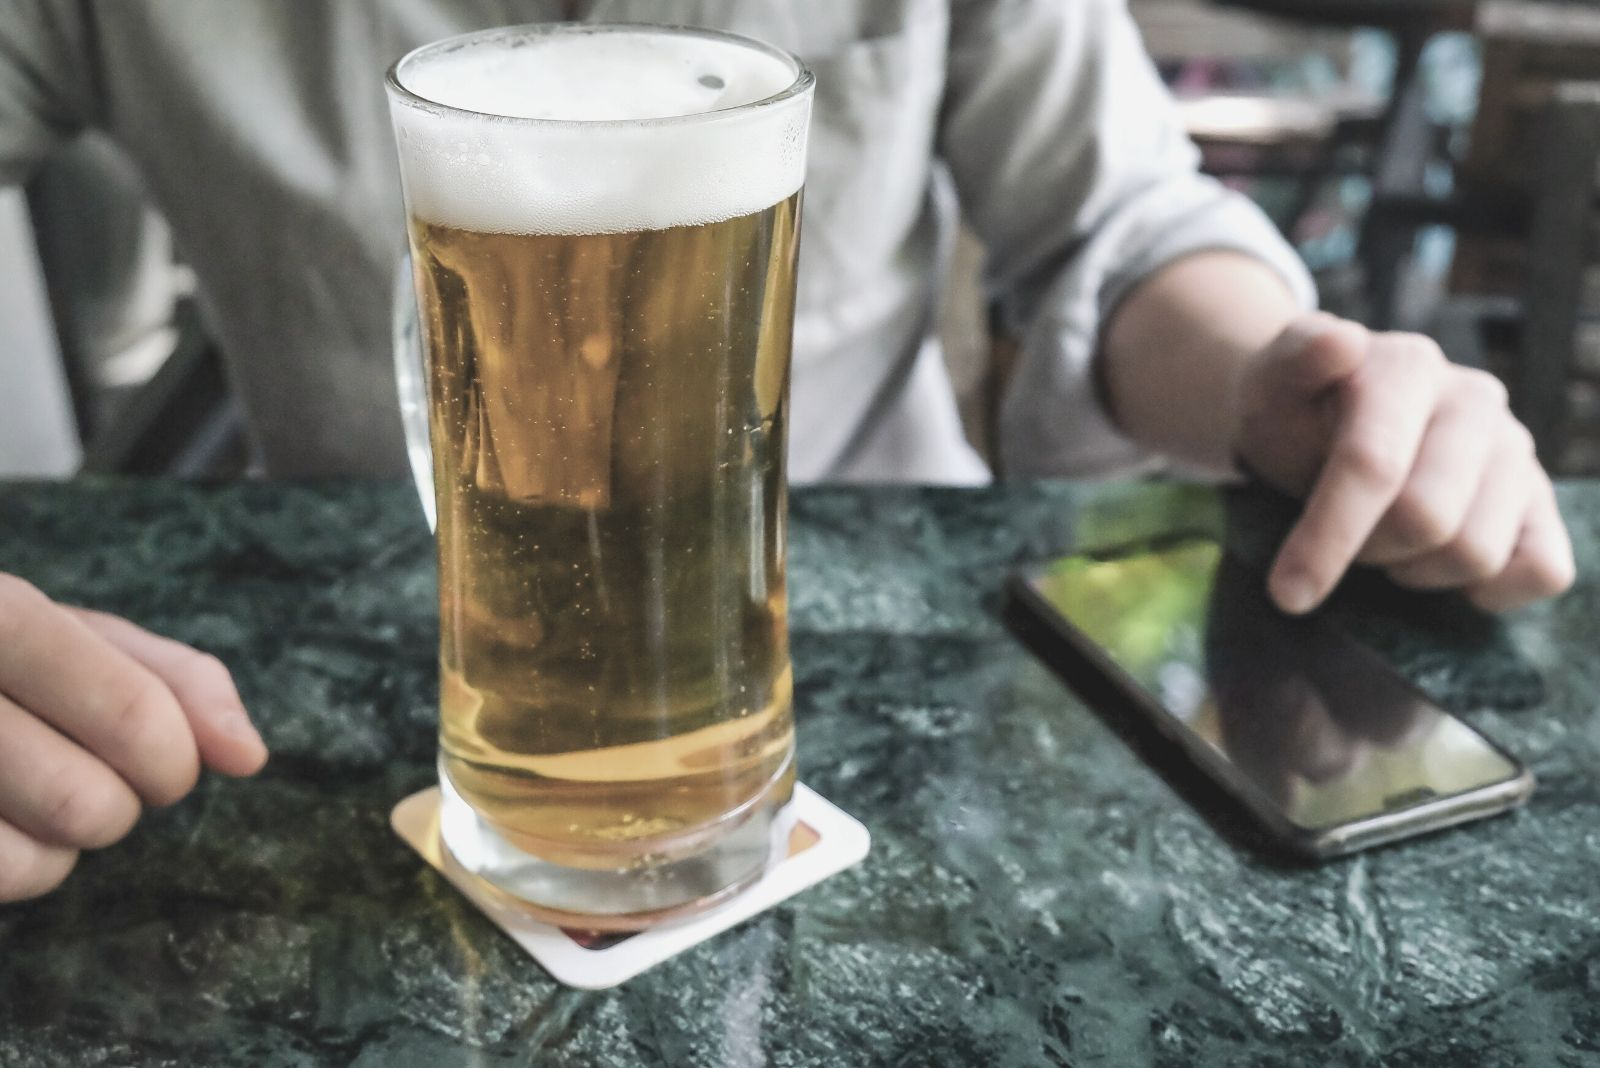 a glass of beer placed on the table with a cropped image of a woman pressing on the keys of the smartphone on the table